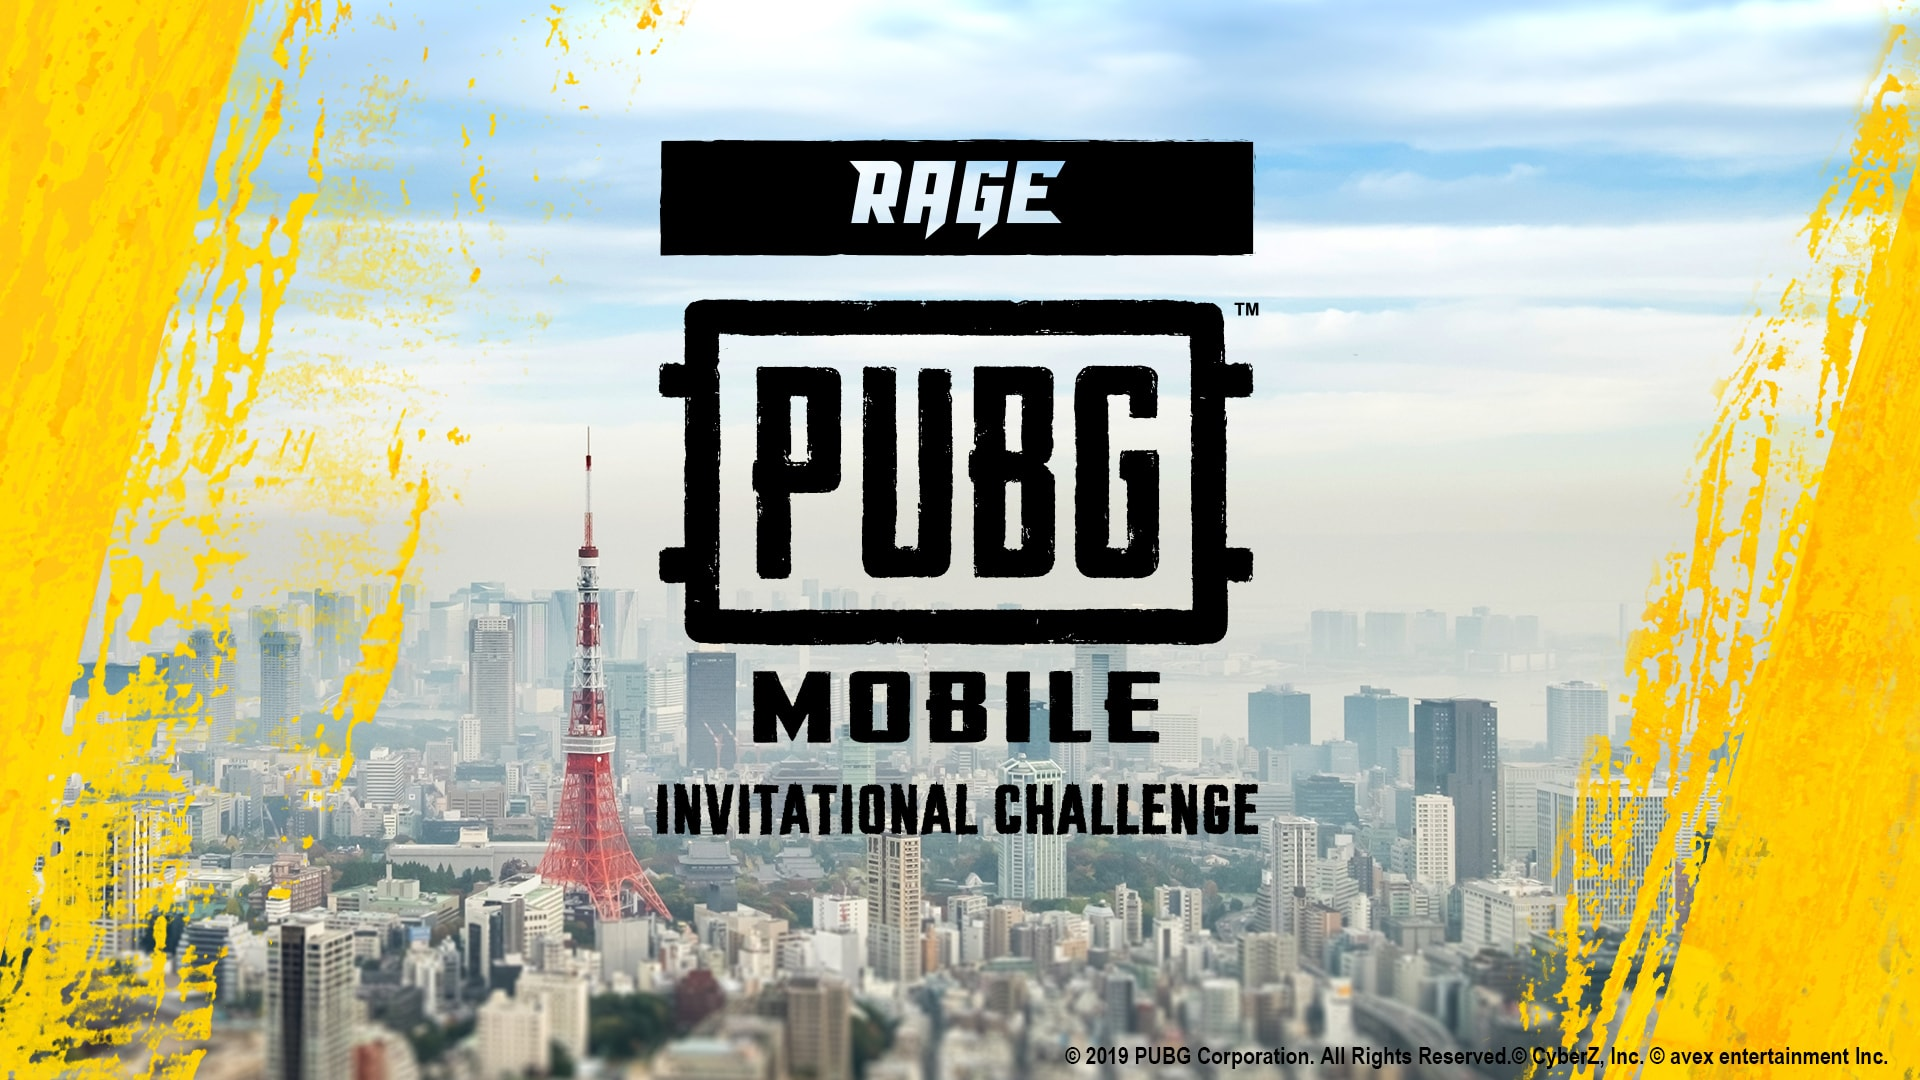 RAGE PUBG MOBILE INVITATIONAL CHALLENGE